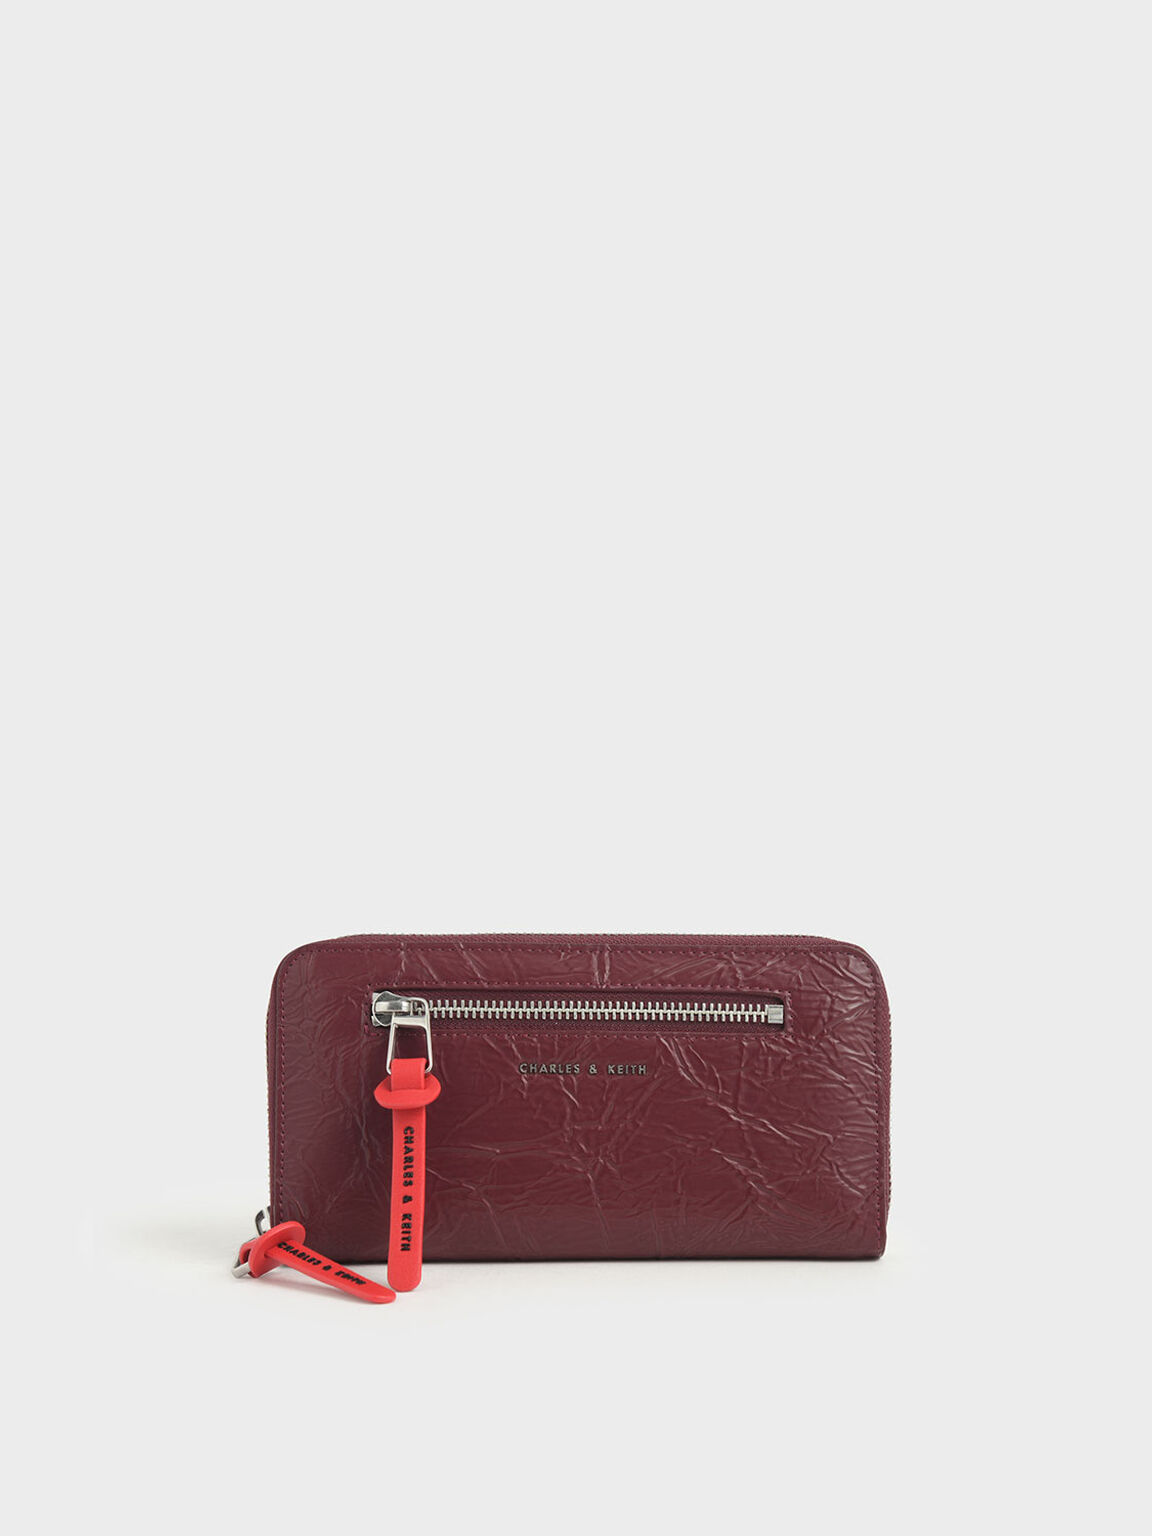 Mini Wrinkled Effect Long Wallet, Burgundy, hi-res